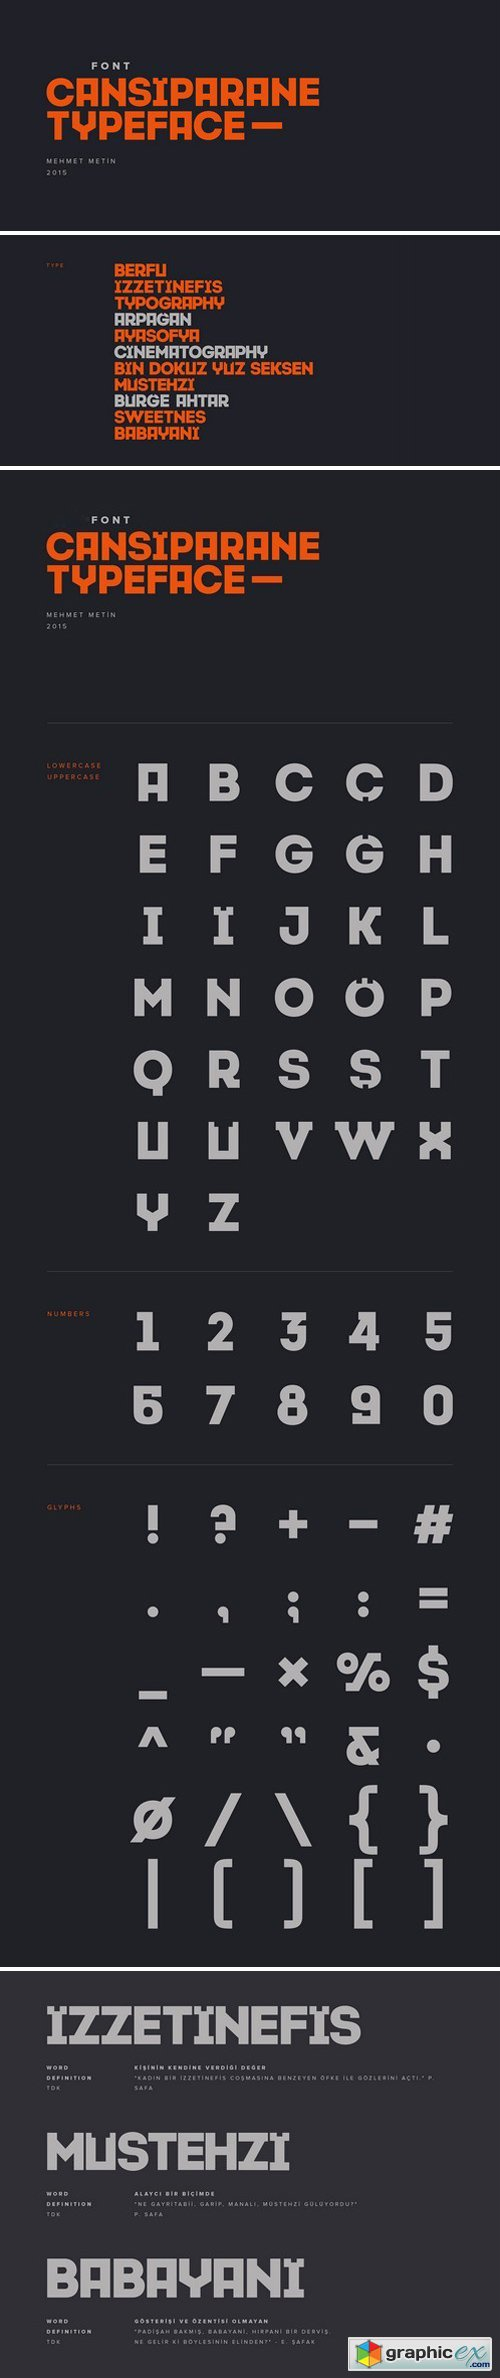 Cansiparane Typeface